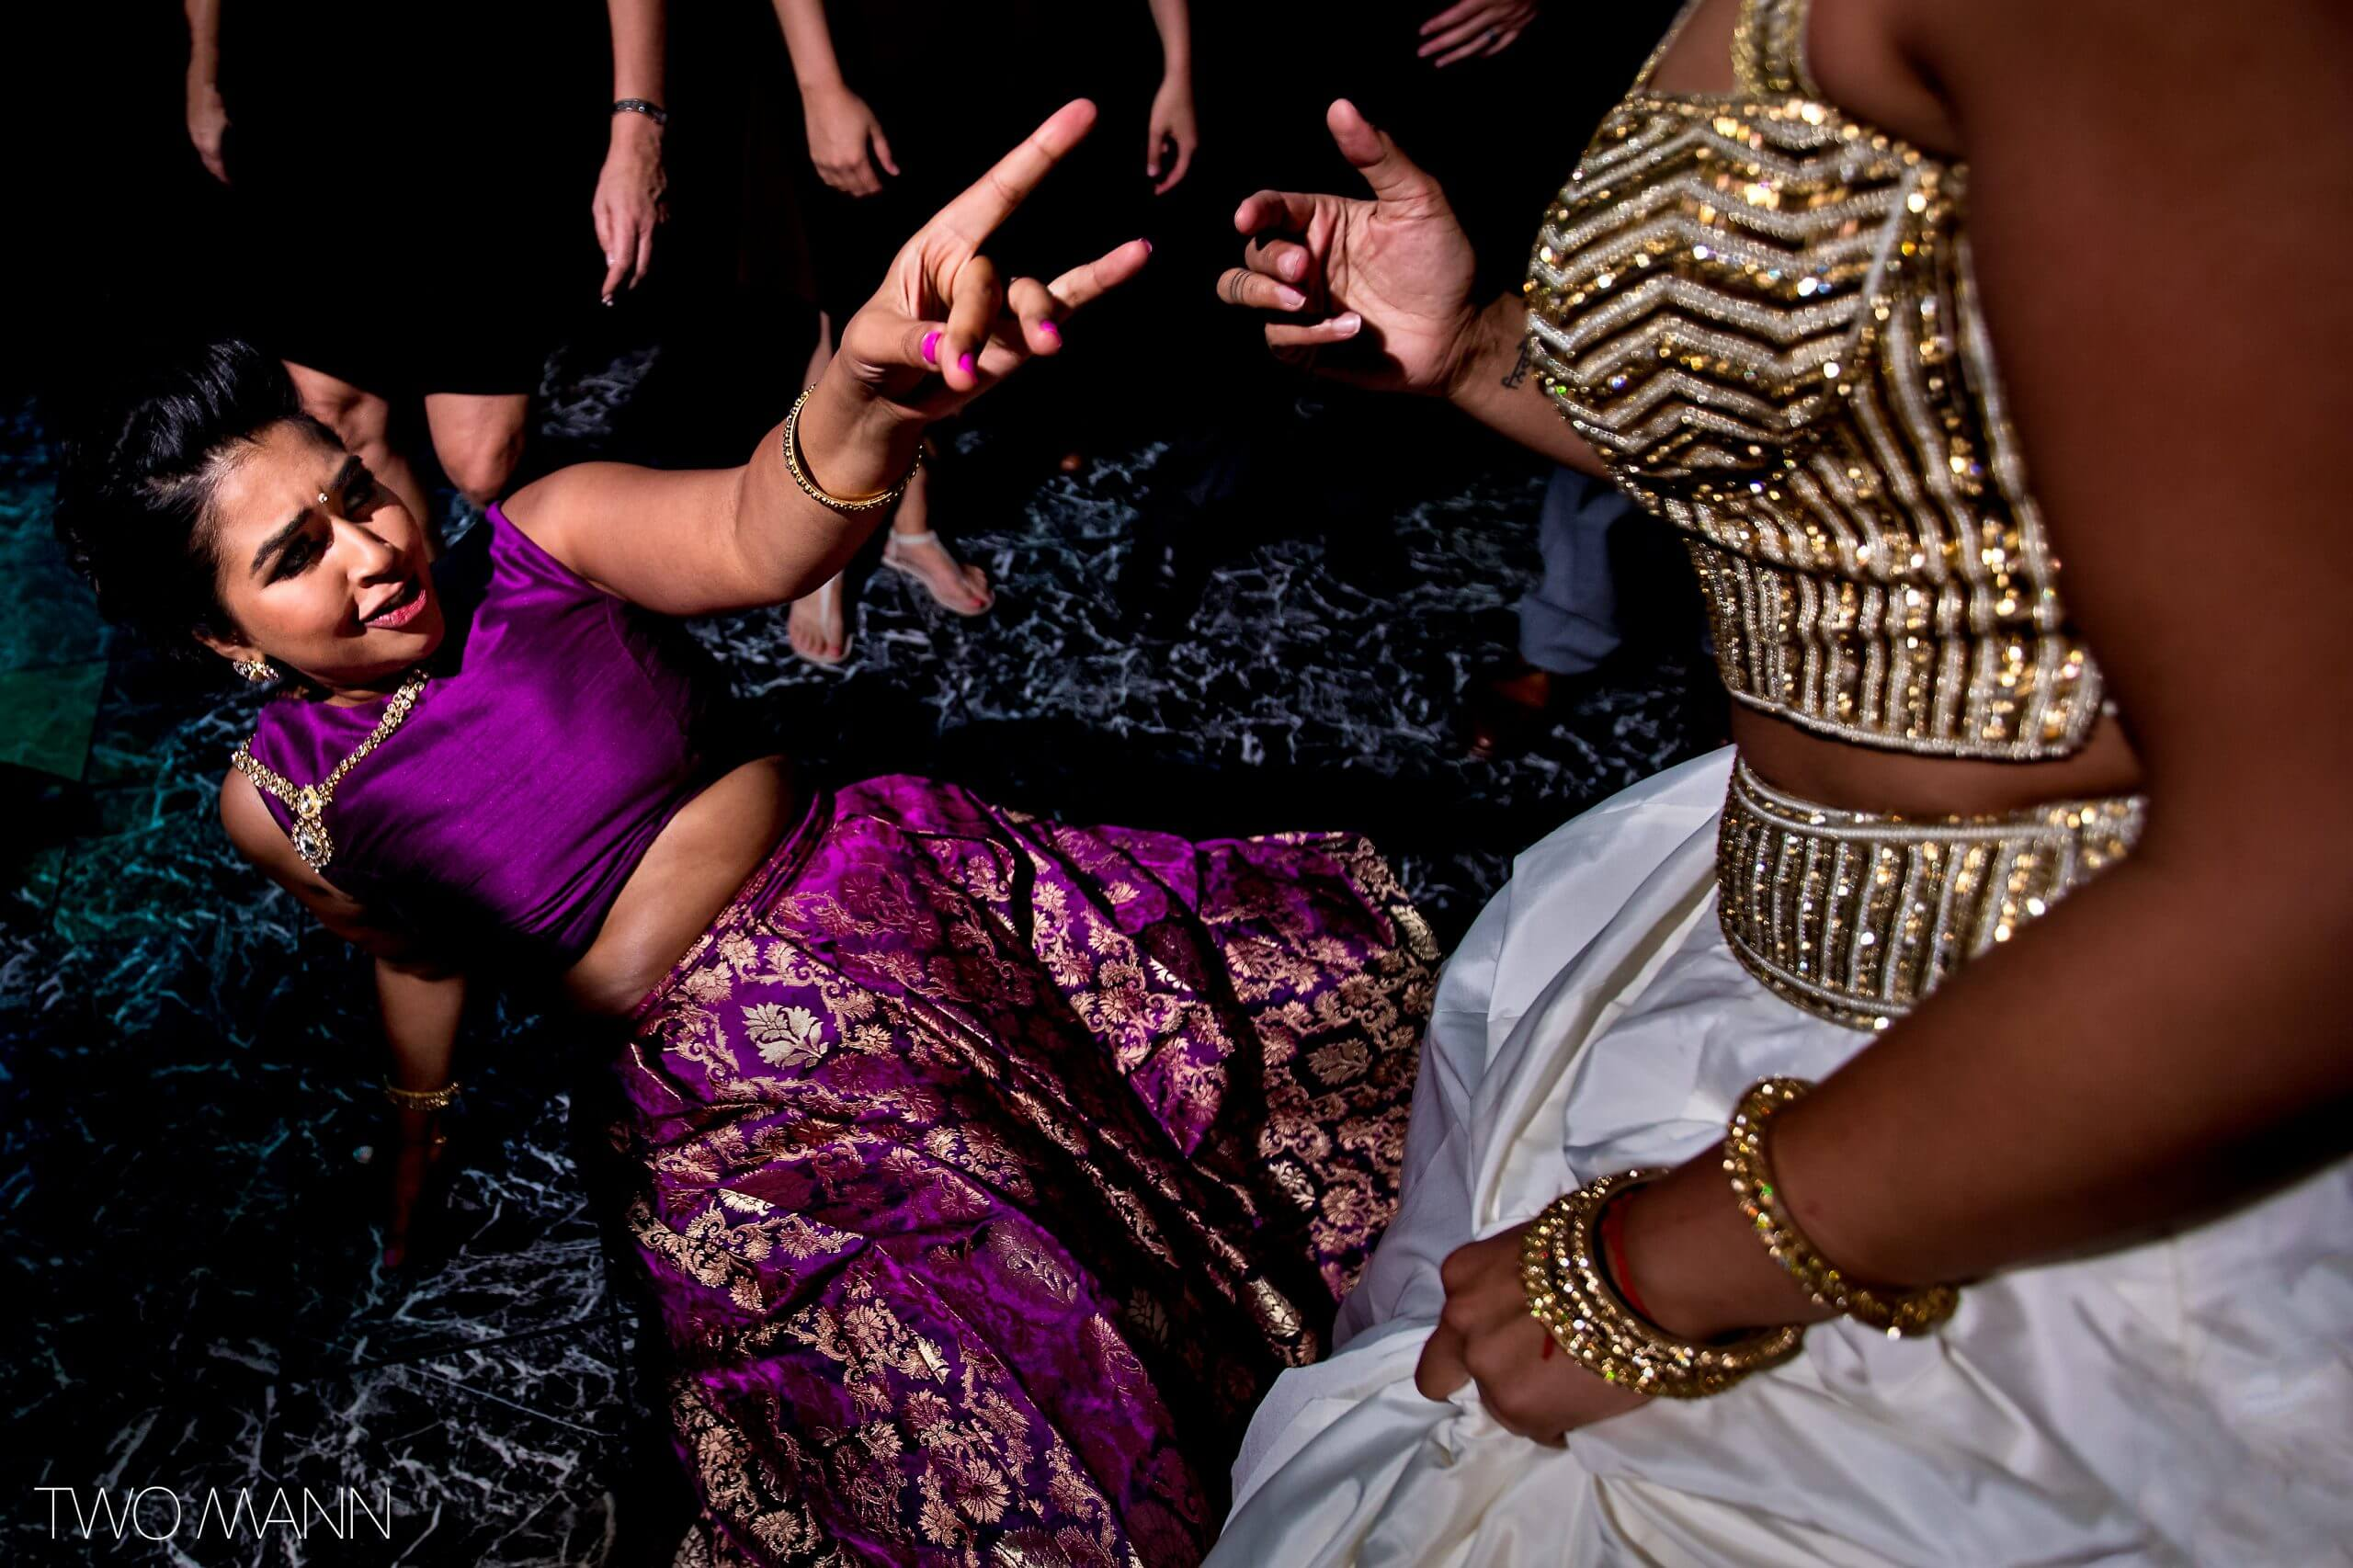 celebration 6 at an Indian wedding ceremony